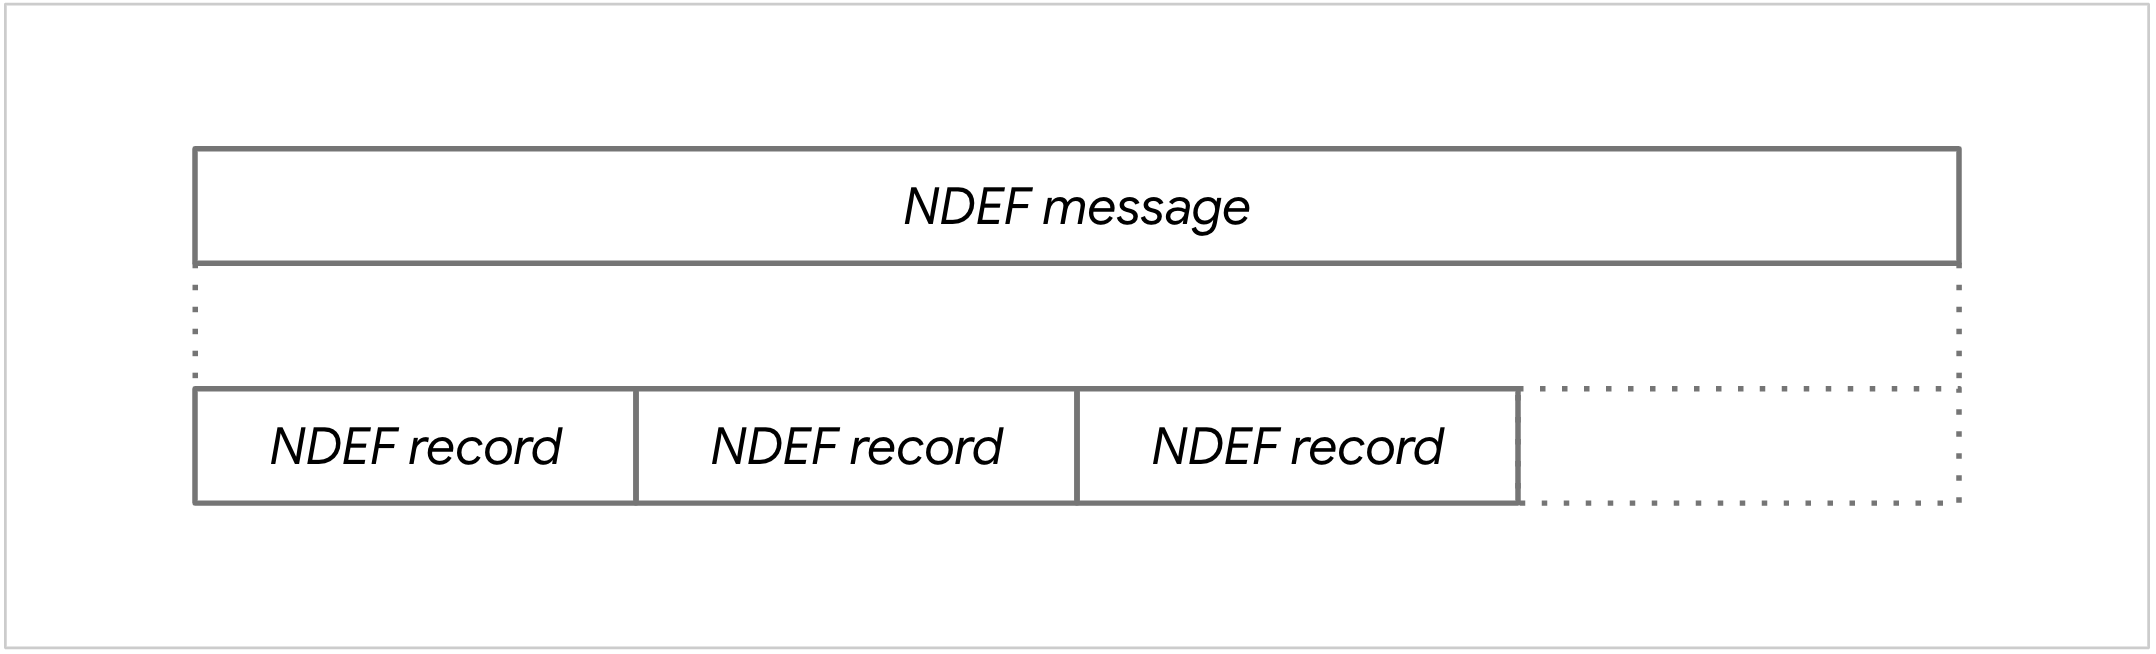 Diagram of an NDEF message